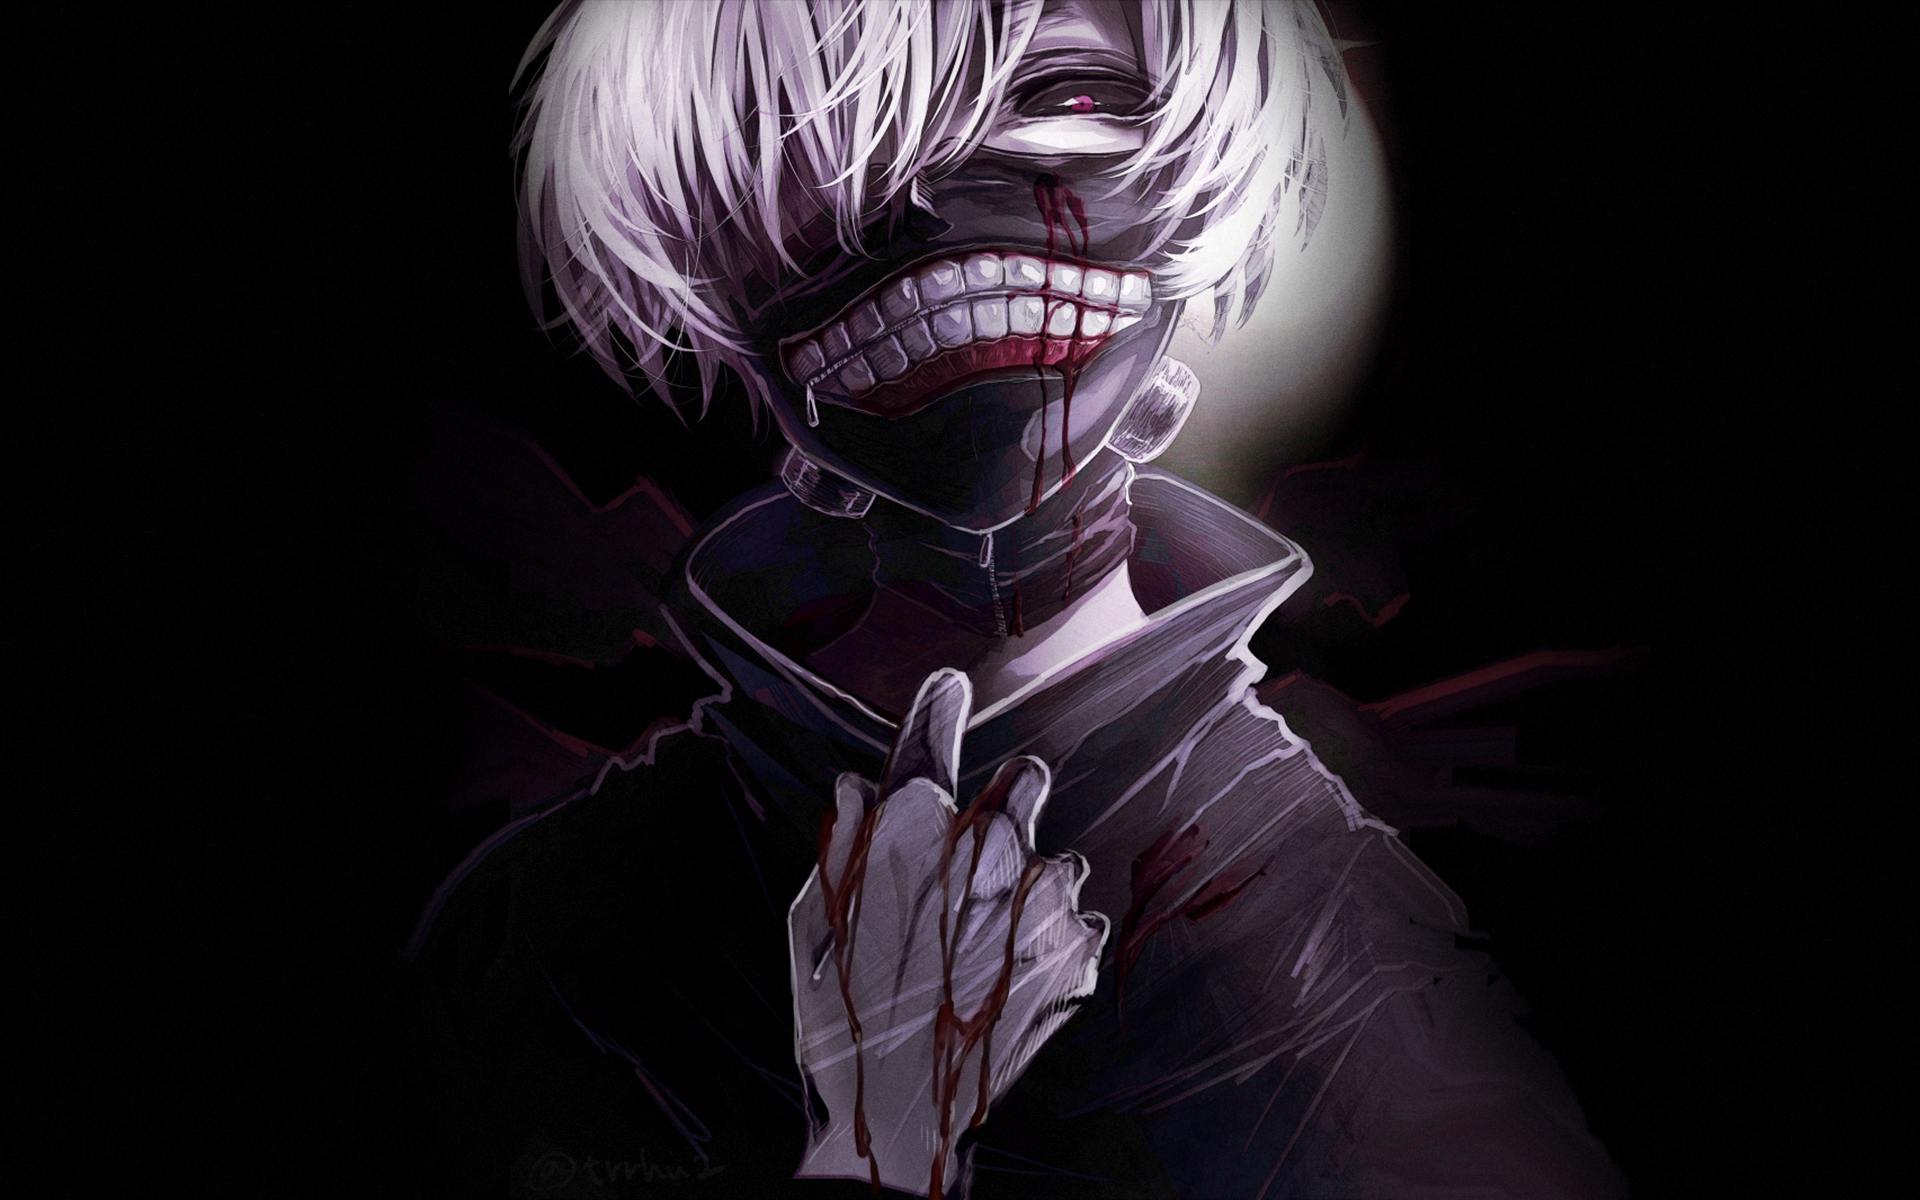 ken kaneki tokyo ghoul 4k 1548527868 - Ken Kaneki Tokyo Ghoul 4k - tokyo ghoul wallpapers, ken kaneki wallpapers, hd-wallpapers, anime wallpapers